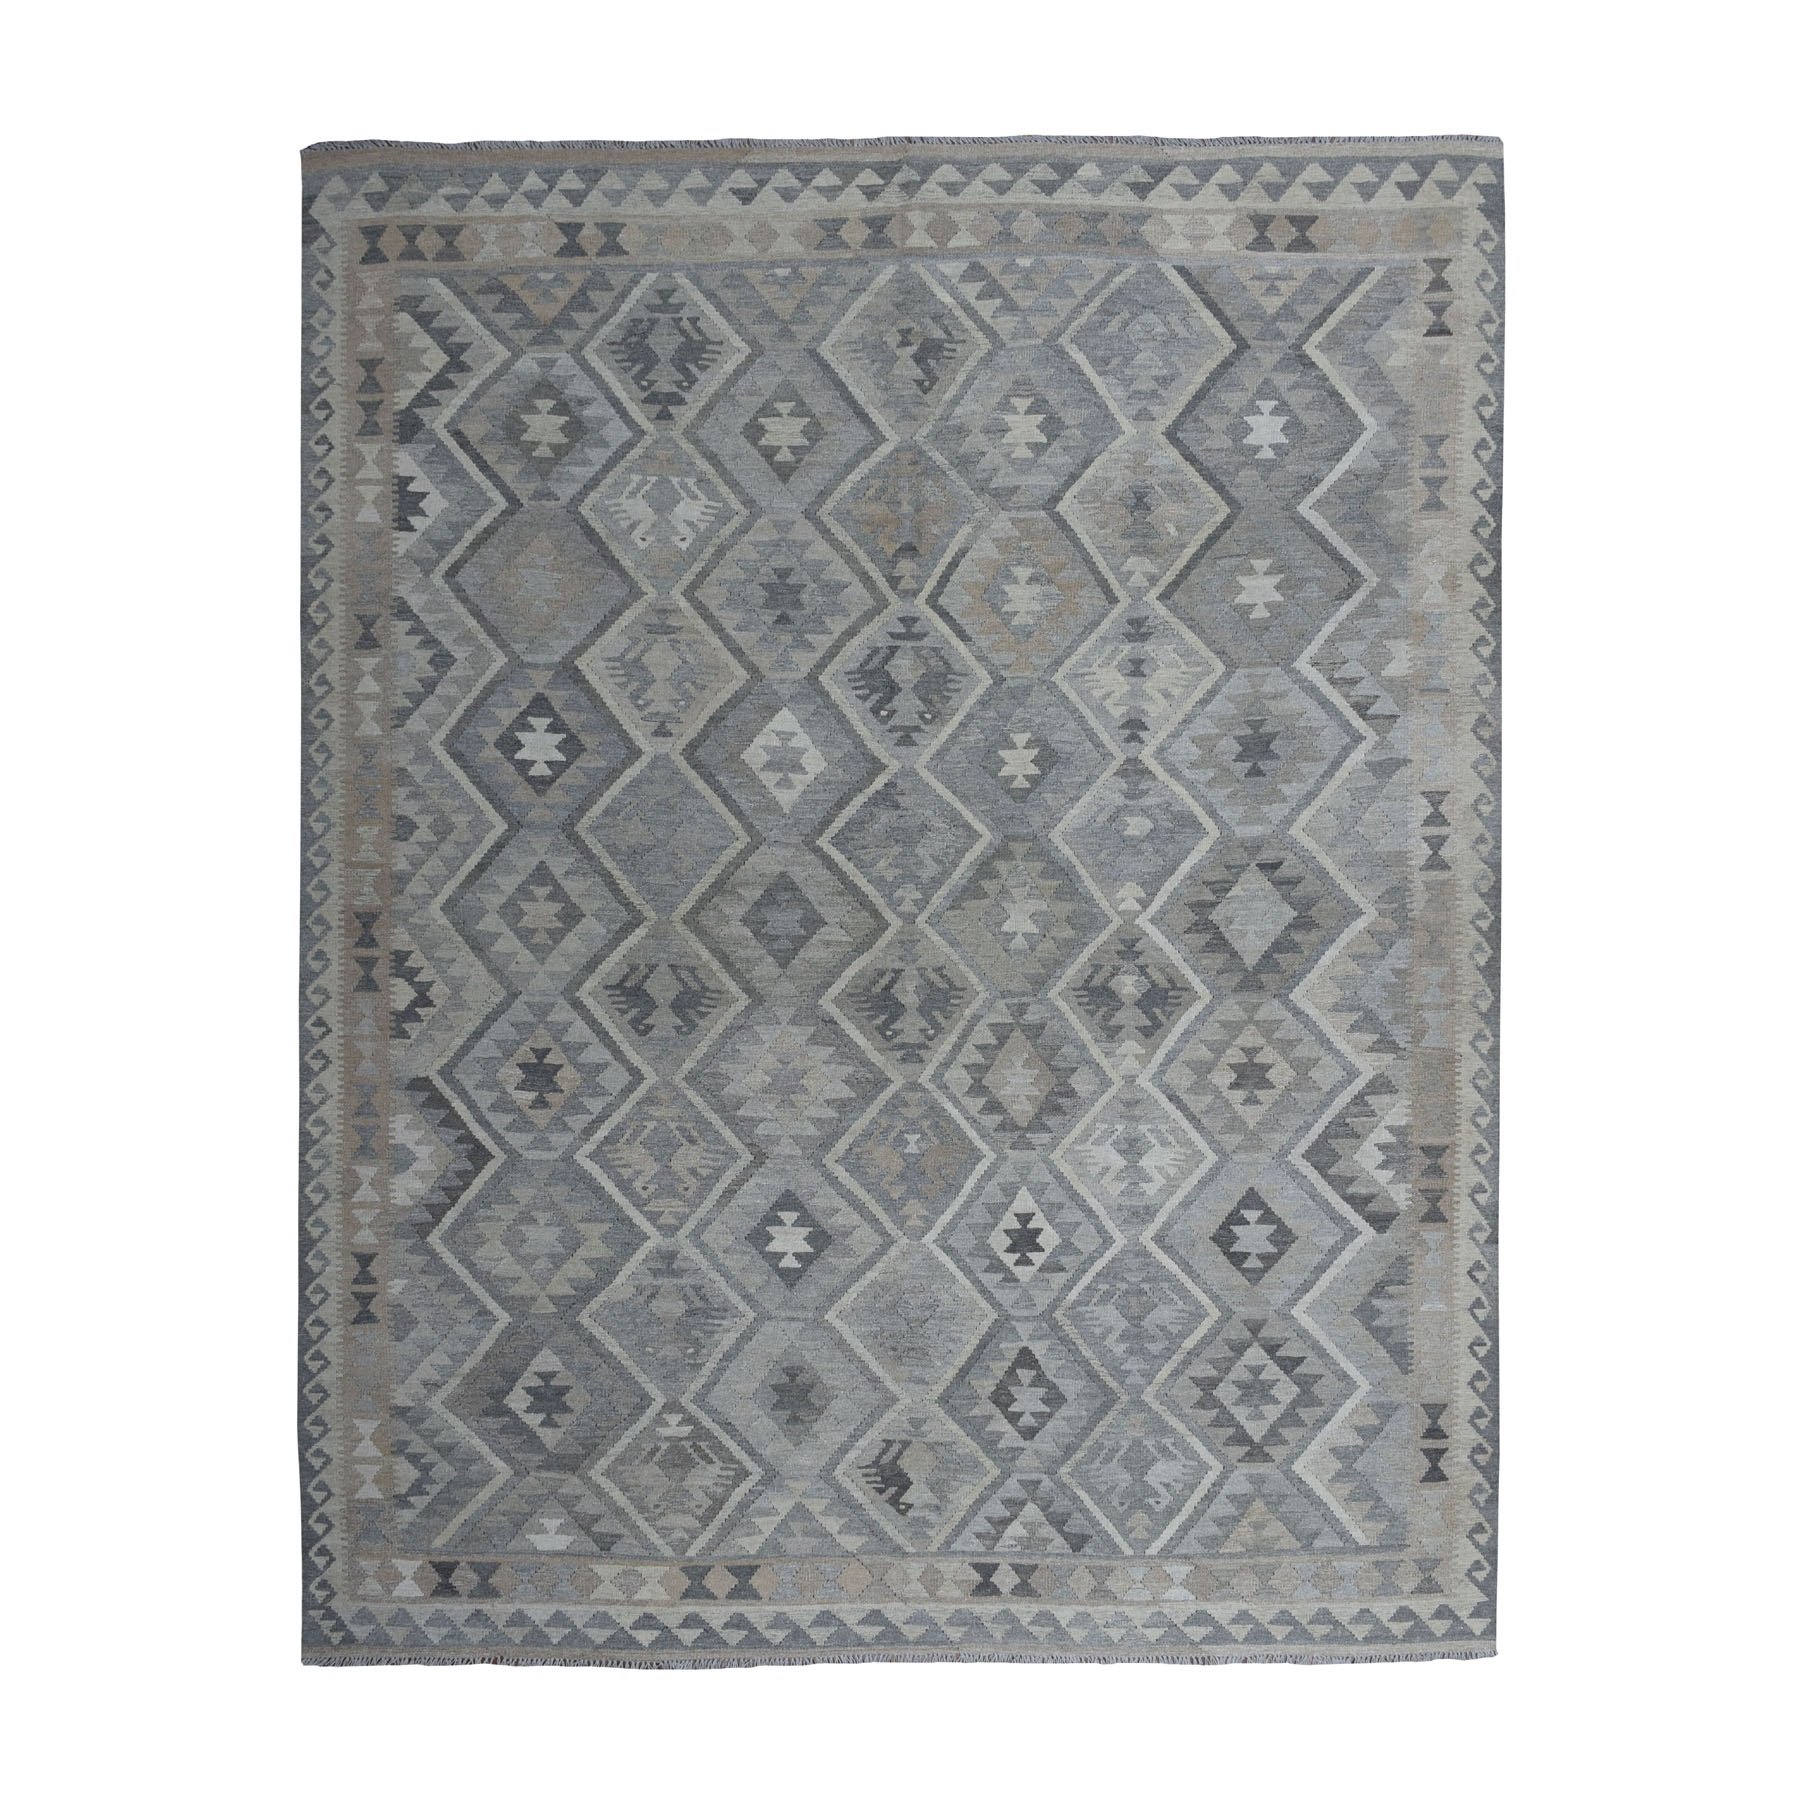 """8'4""""X10' Undyed Natural Wool Afghan Kilim Reversible Hand Woven Oriental Rug moaeb970"""